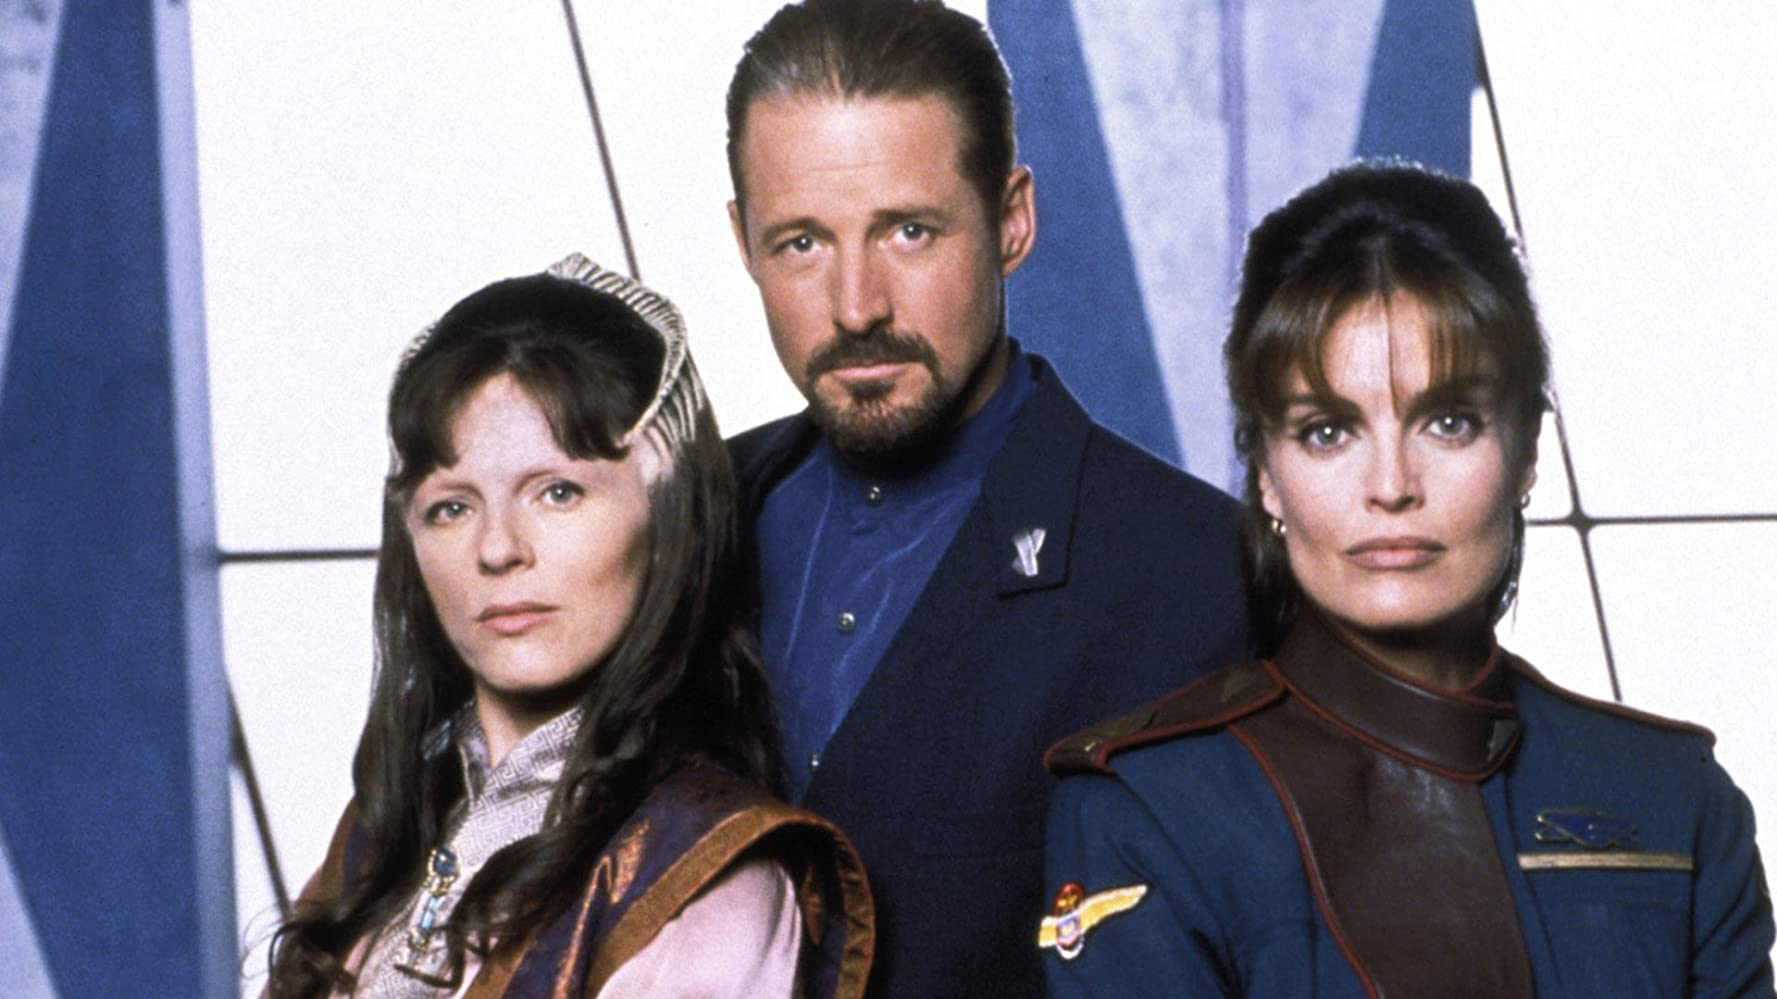 Bruce Boxleitner, Mira Furlan, and Tracy Scoggins in Babylon 5 (1993)